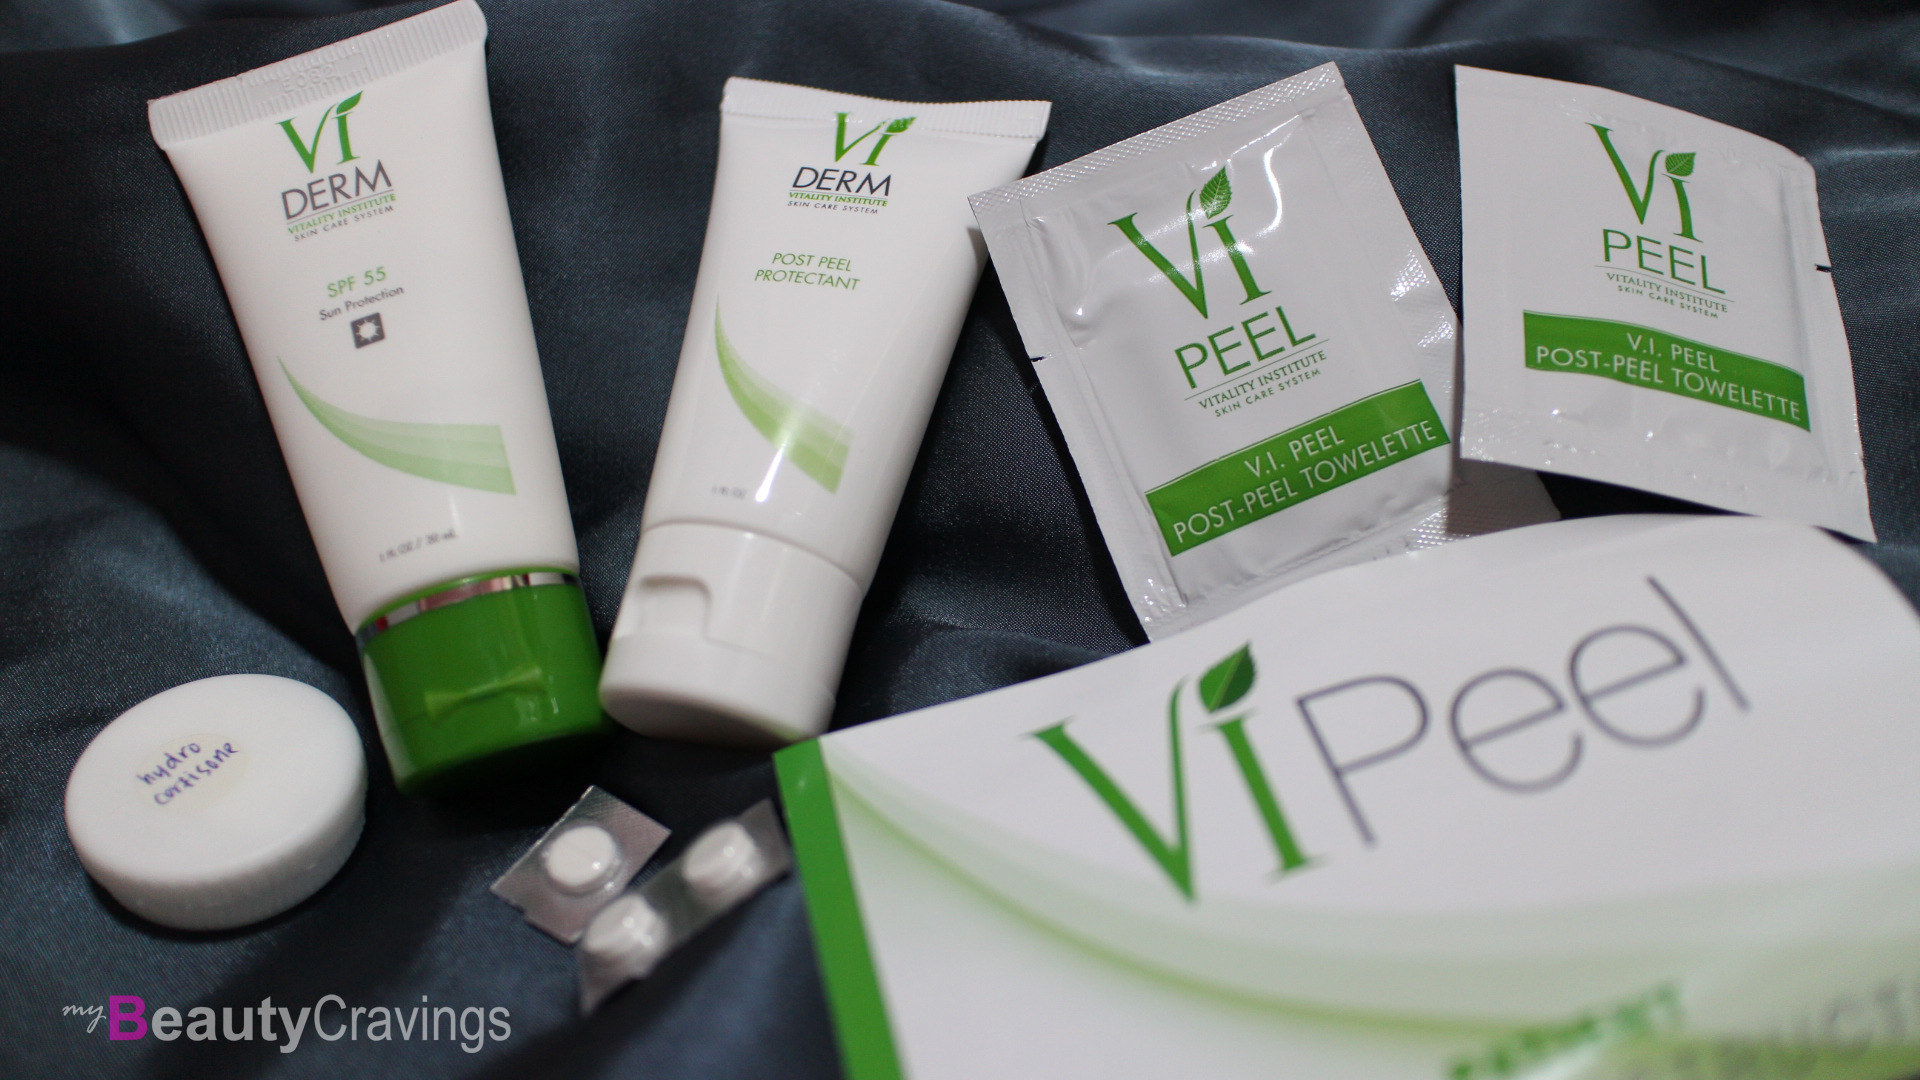 VI Precision Peel - Bring Home Kit